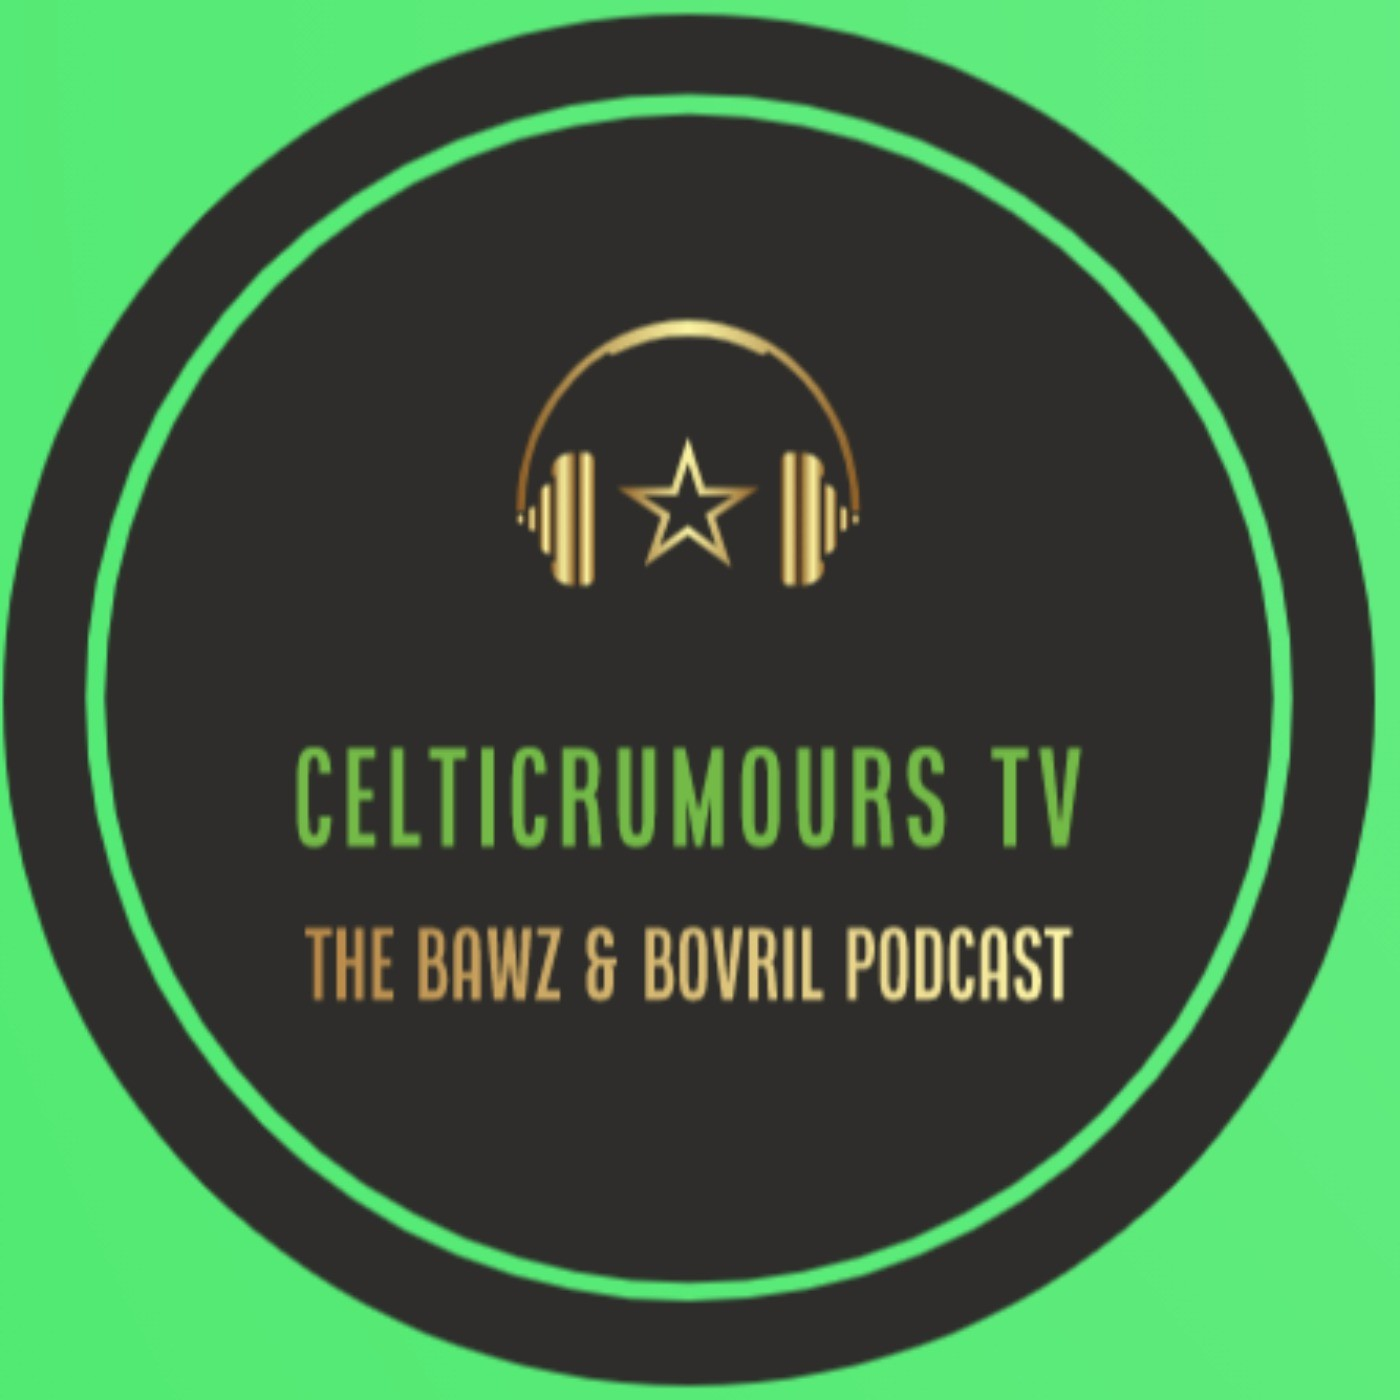 The Bawz & Bovril Podcast Episode #7